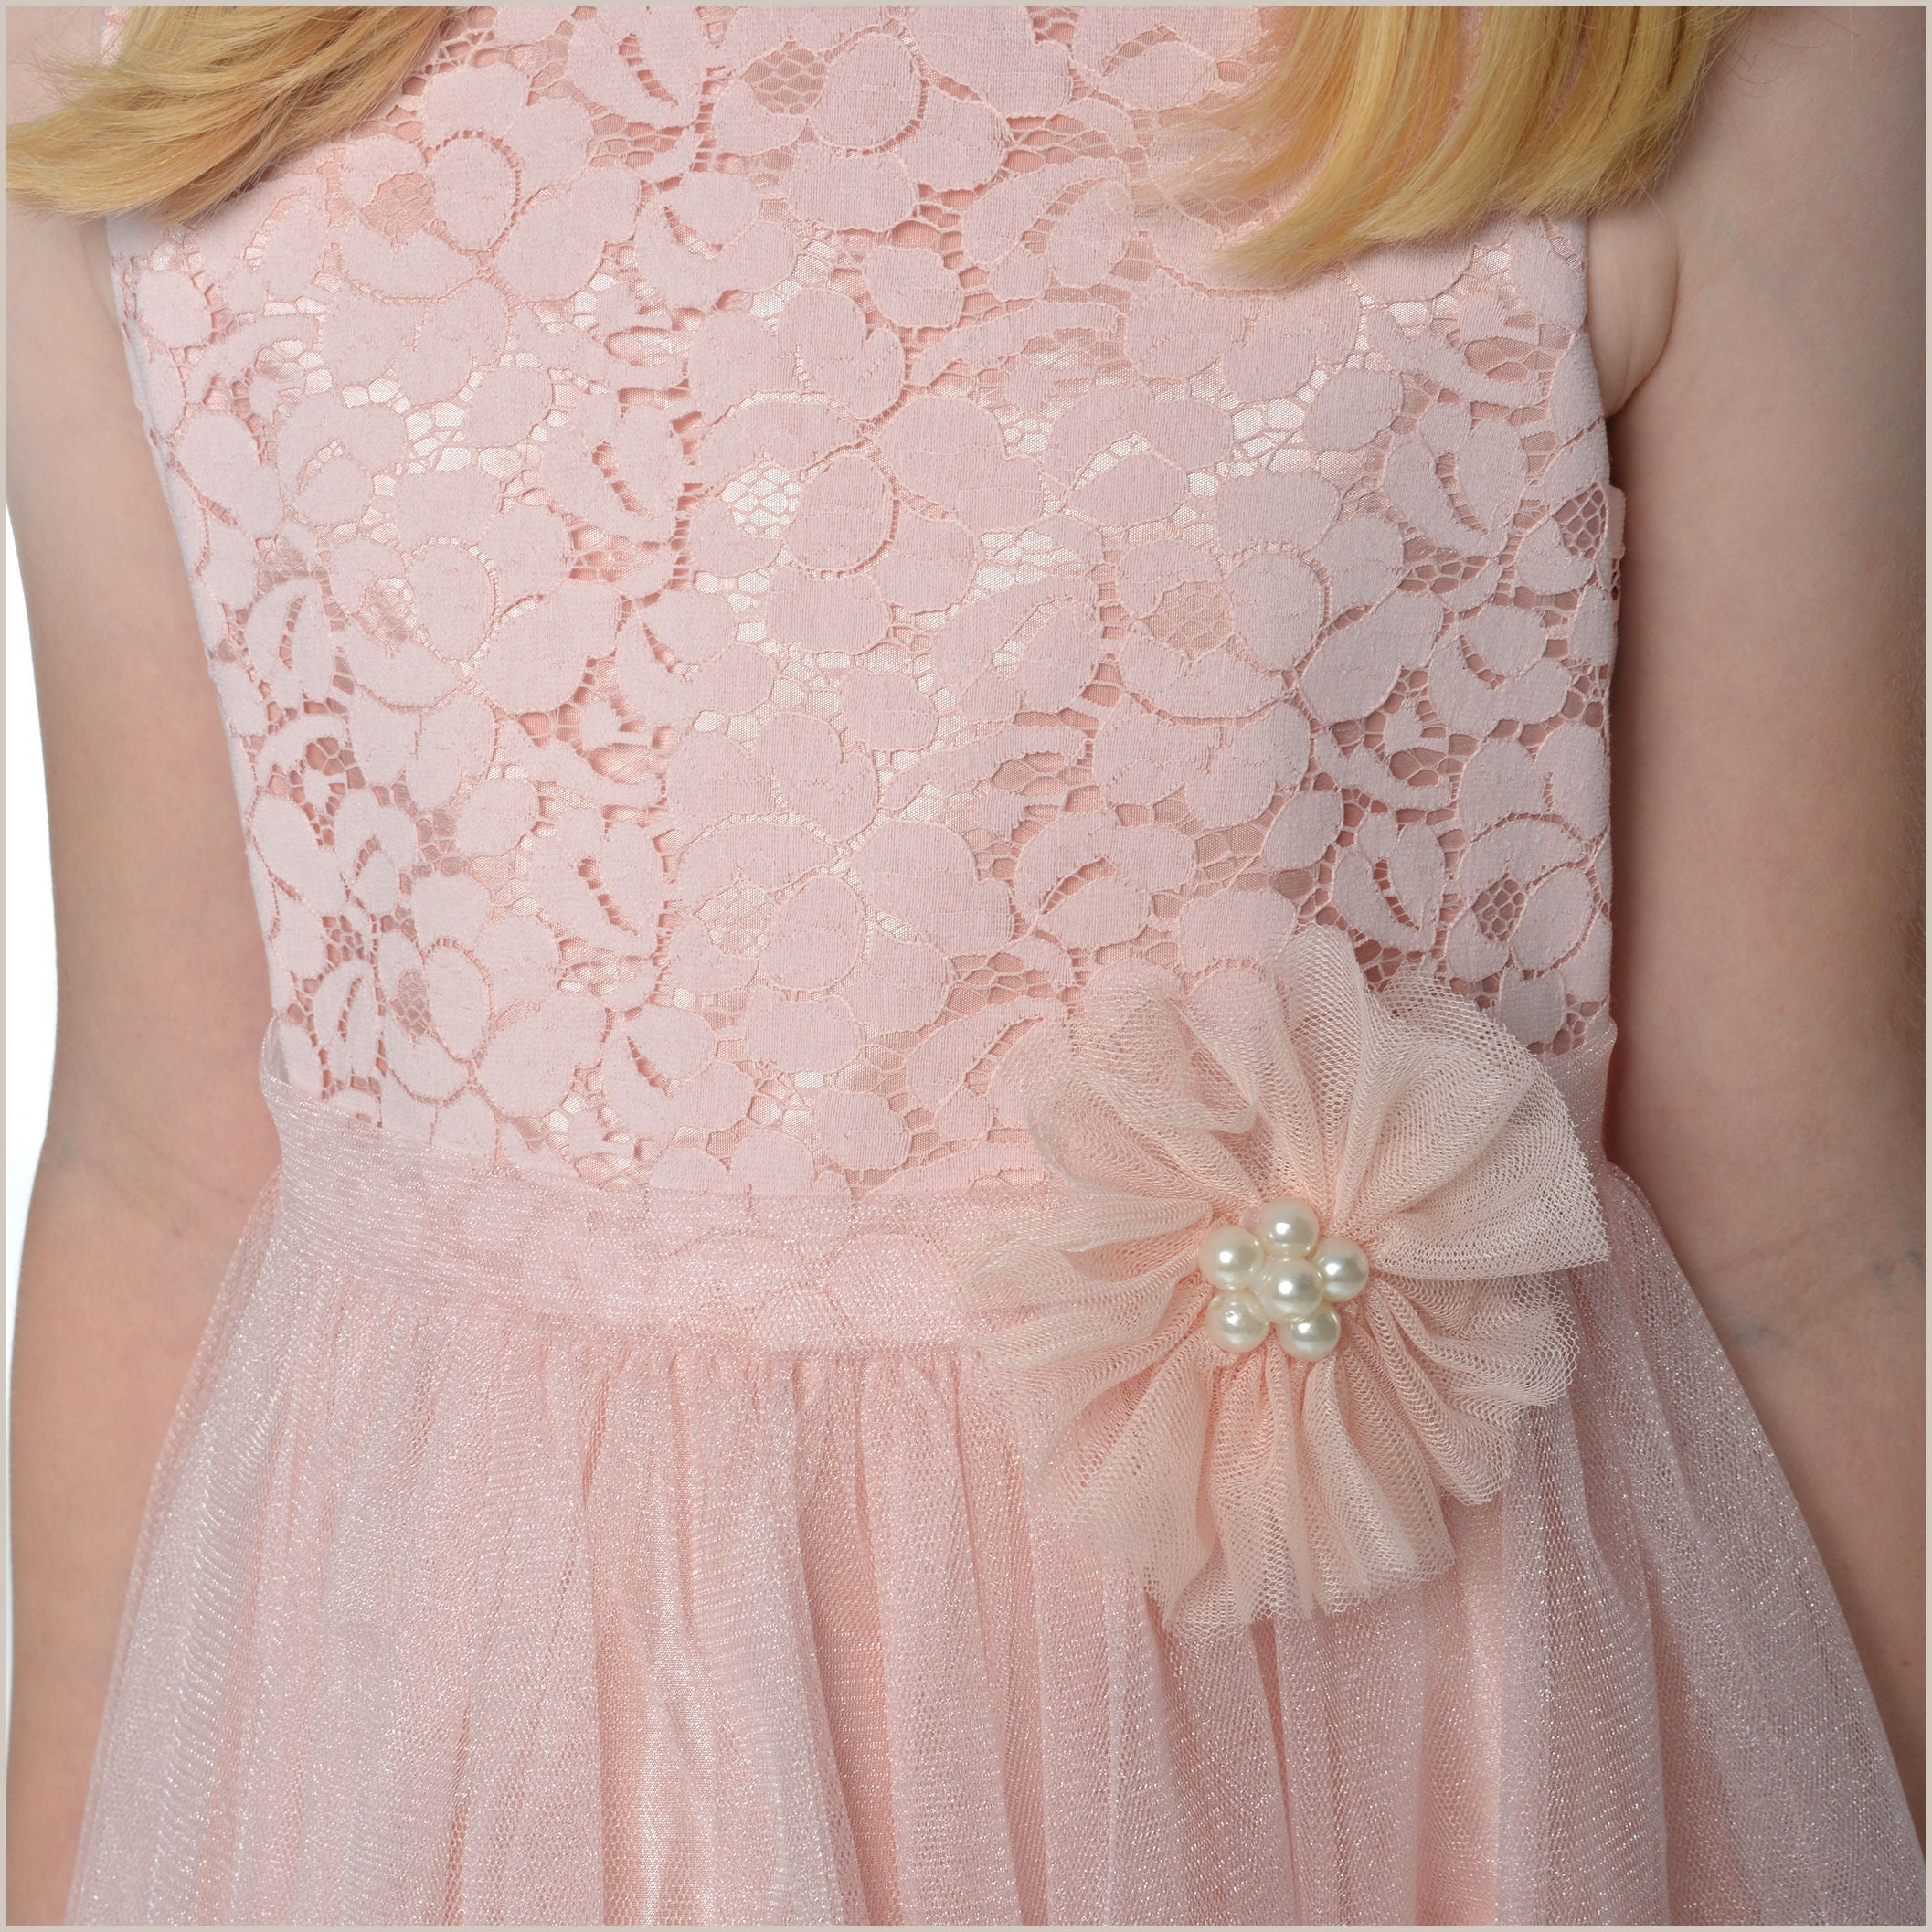 Millie Blush Pink Lace Flower Girl Dress